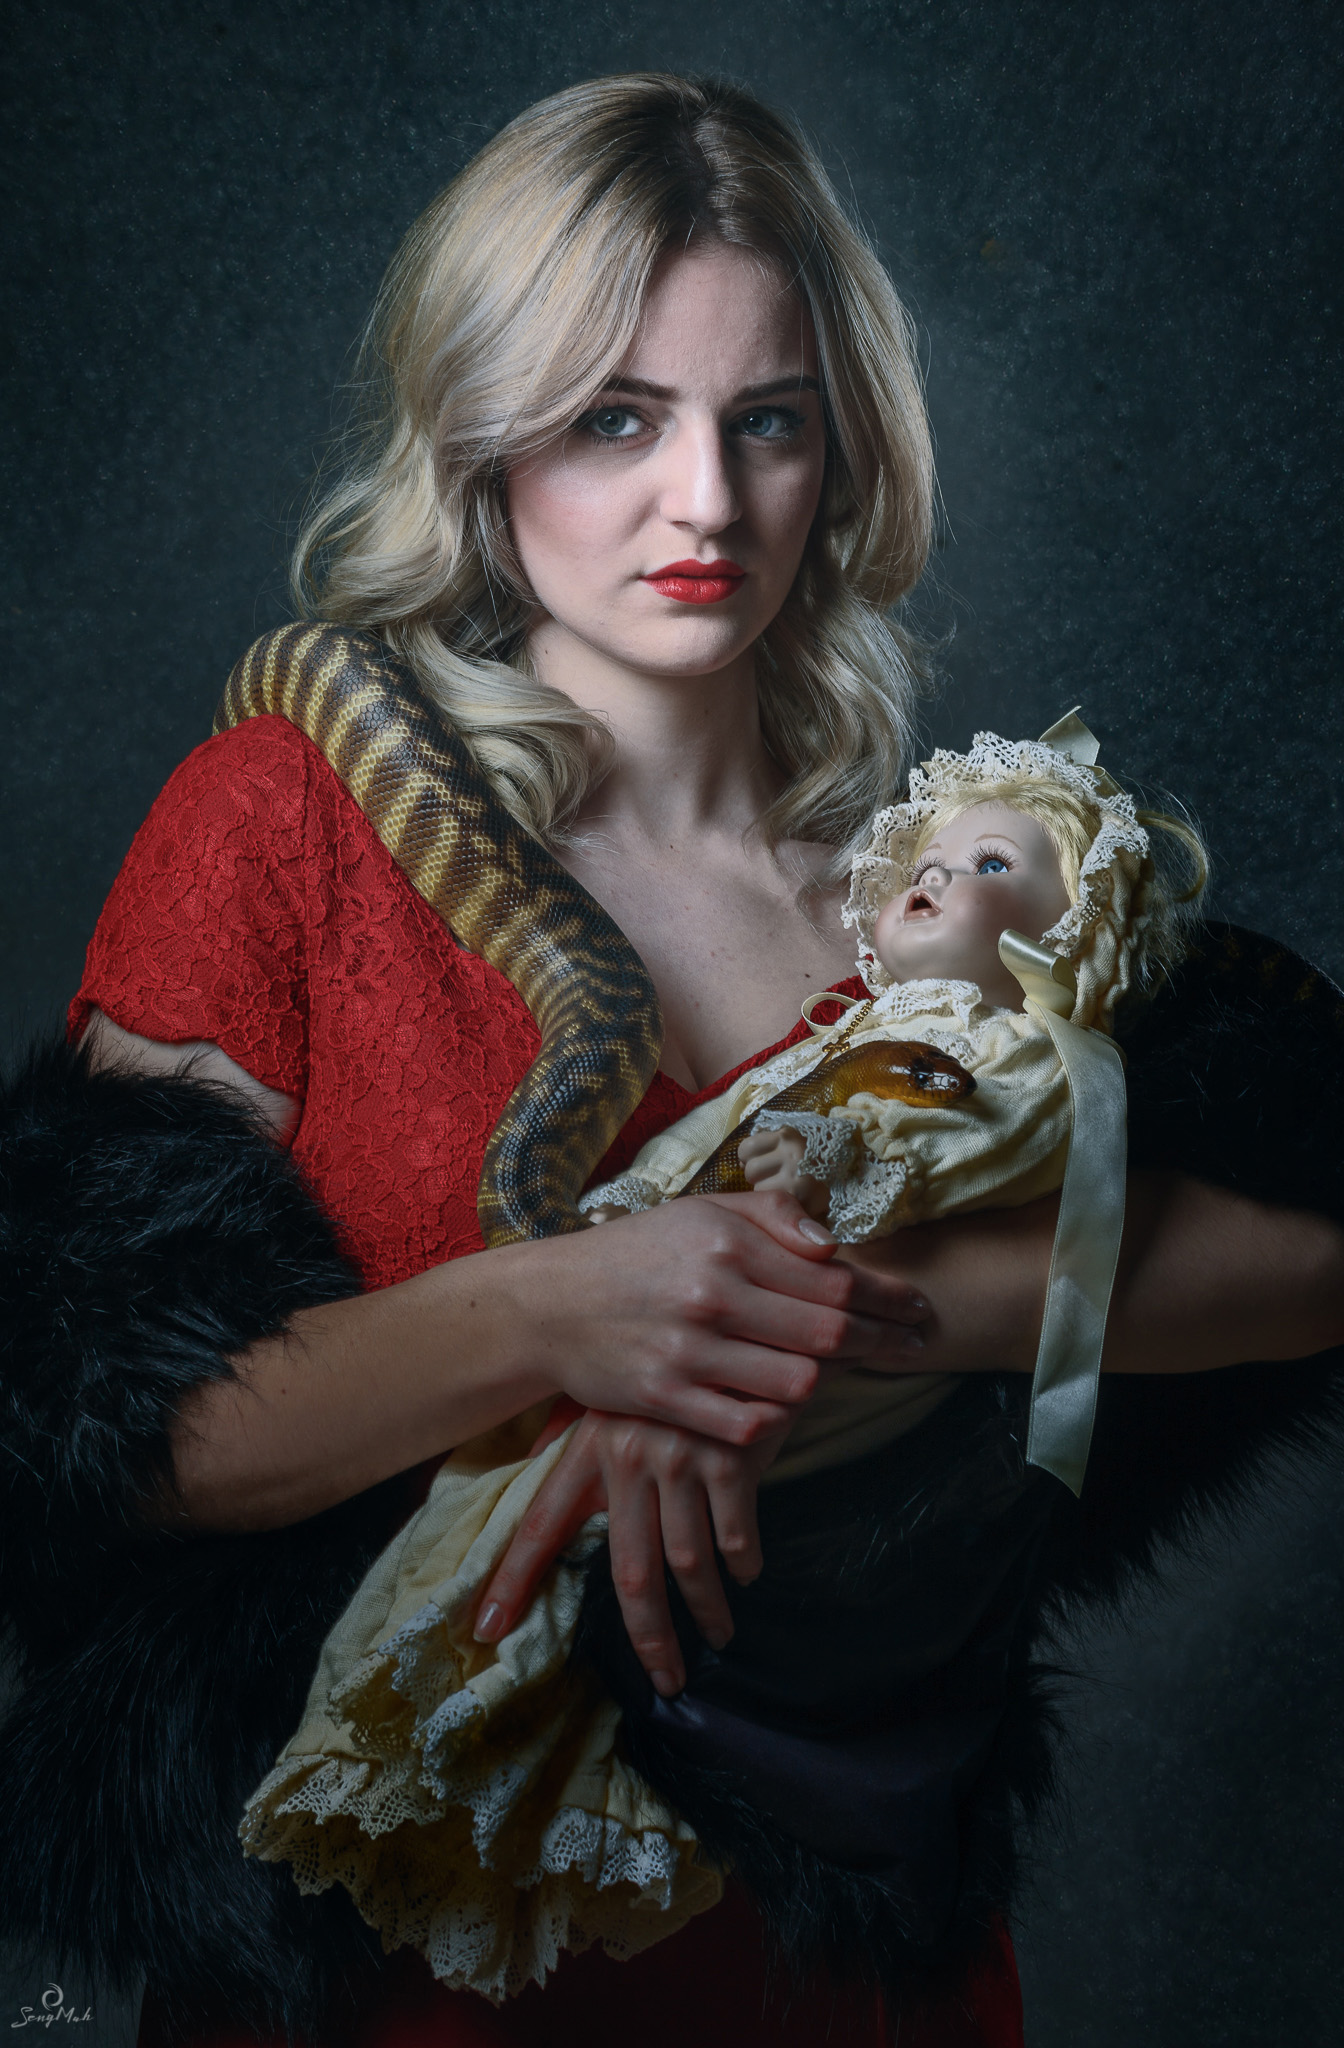 Young Woman with doll and snake